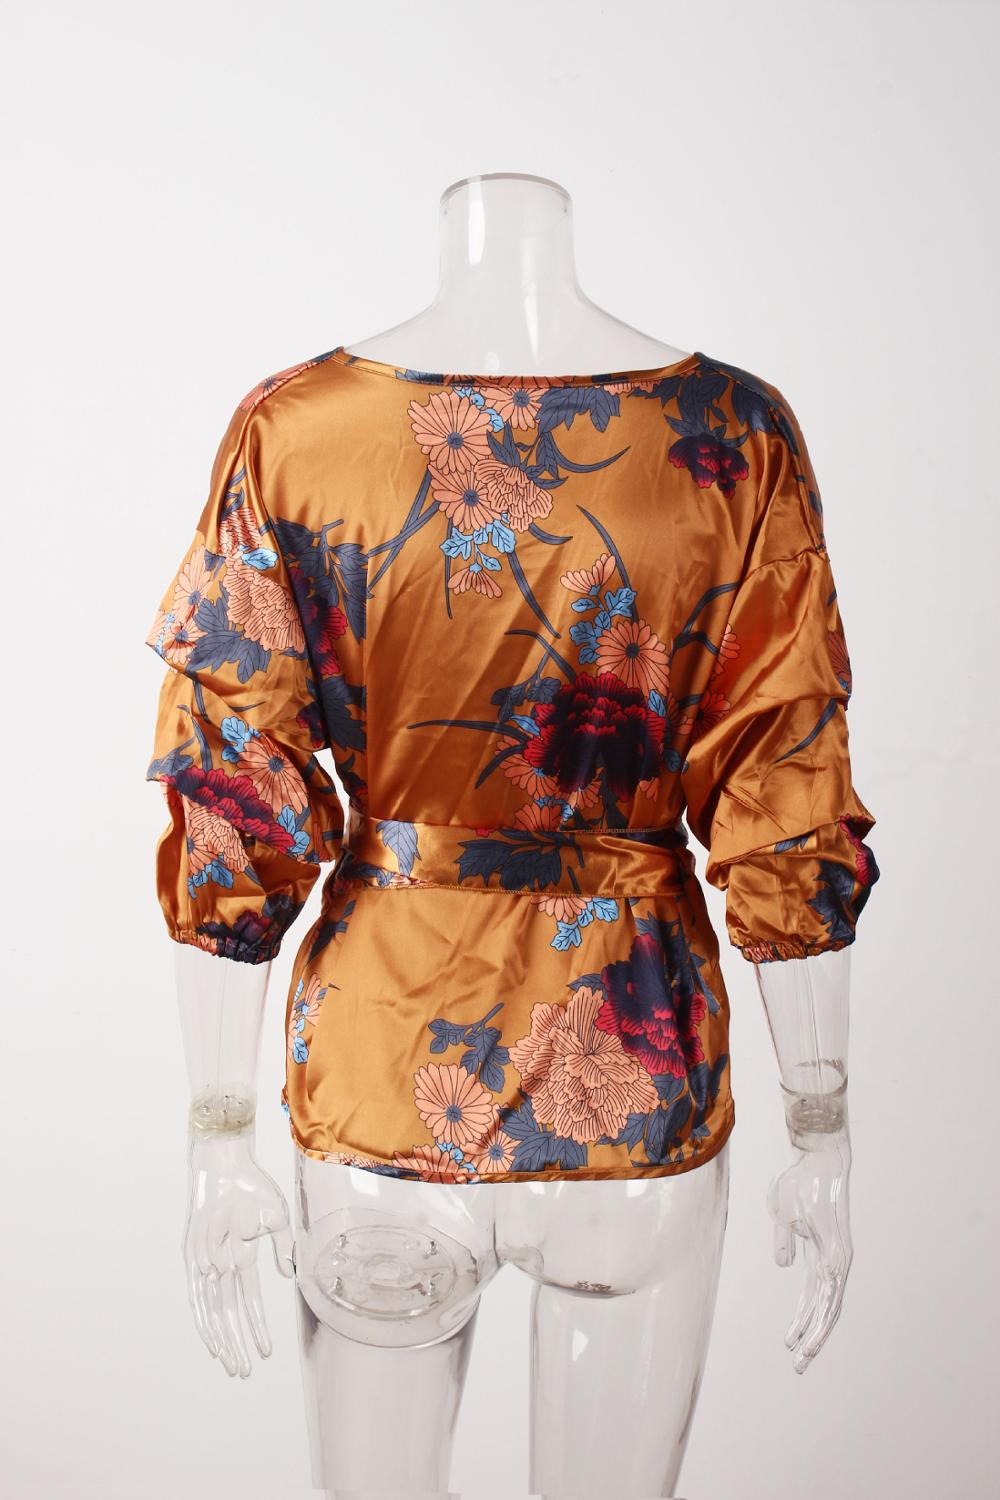 LOSSKY Women V-Neck Sexy Boho Blouse Print Floral Bandages Long Sleeve Blouse Bohemia Ladies Top Shirts Blouses Summer 2018 16